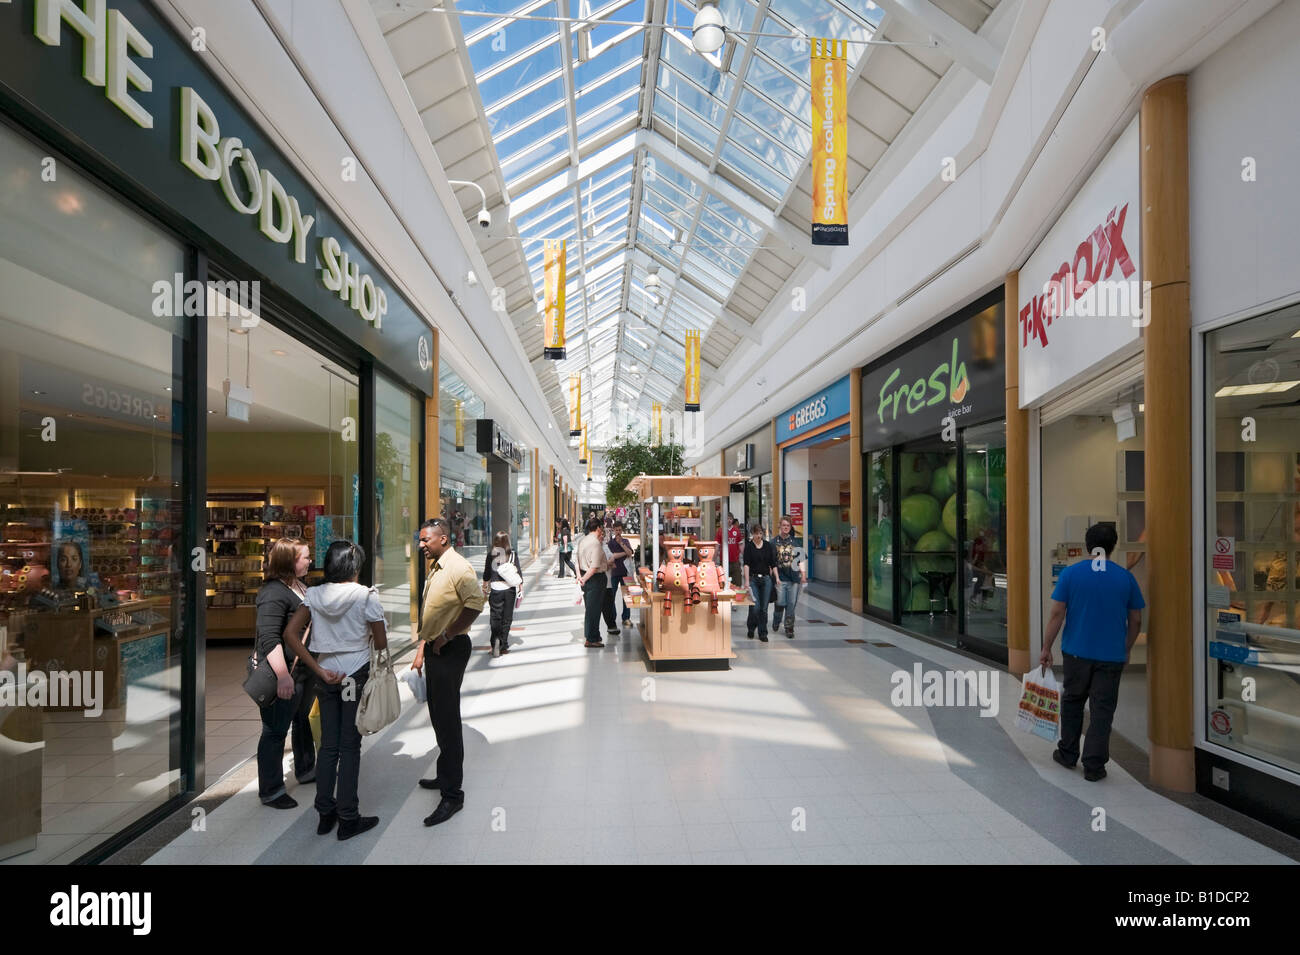 Kingsgate Shopping Centre, Huddersfield, West Yorkshire, England, United Kingdom - Stock Image